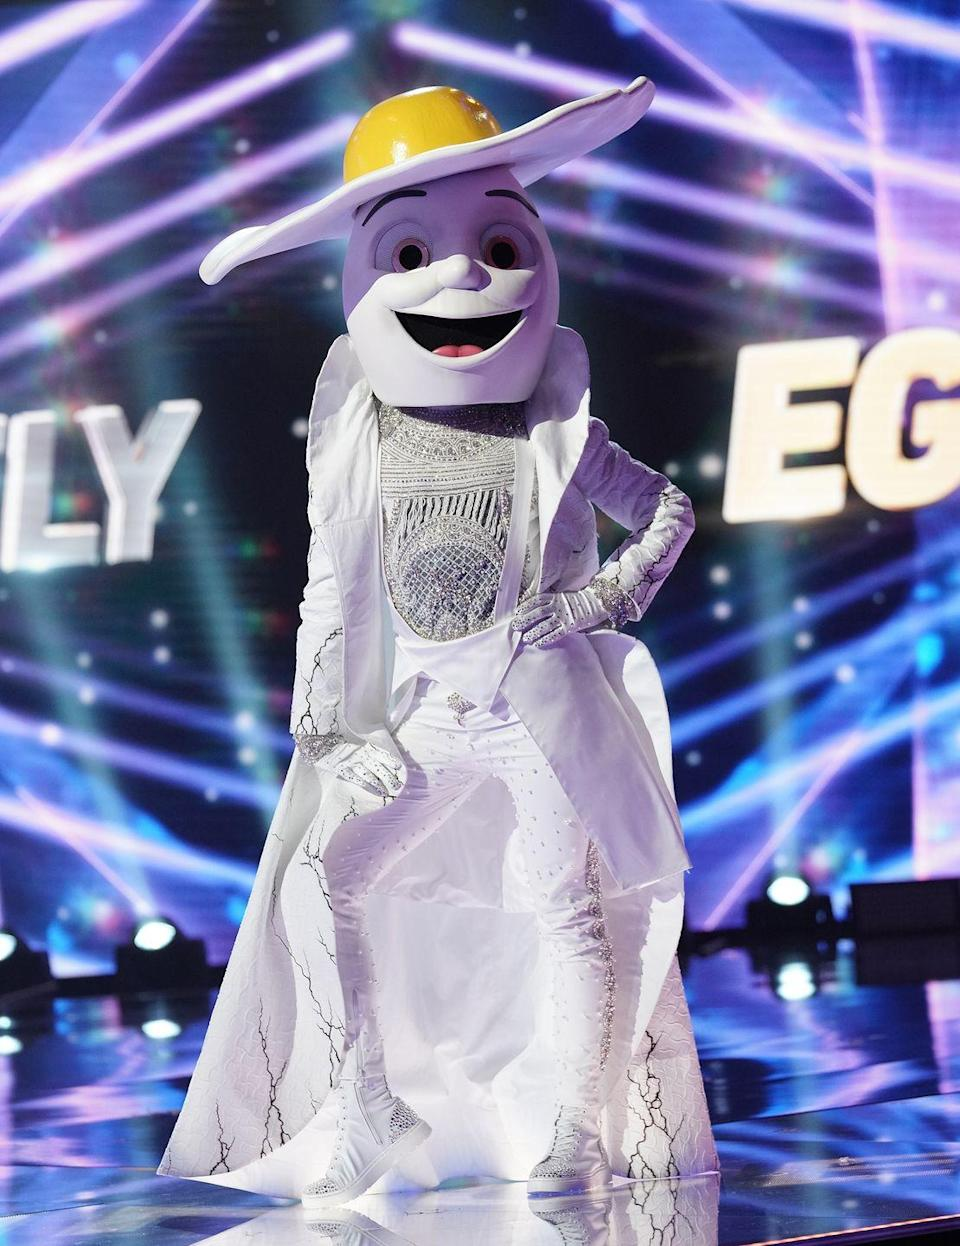 """<p>Code names, like Fox, Night Angel, and Unicorn are used to describe the alter egos of contestants. Since <a href=""""https://www.goodhousekeeping.com/life/entertainment/a30677487/masked-singer-season-3-taping-experience/"""" rel=""""nofollow noopener"""" target=""""_blank"""" data-ylk=""""slk:no one knows their real identity"""" class=""""link rapid-noclick-resp"""">no one knows their real identity</a>, the contestants are only referred to by this name until they're unmasked.</p>"""